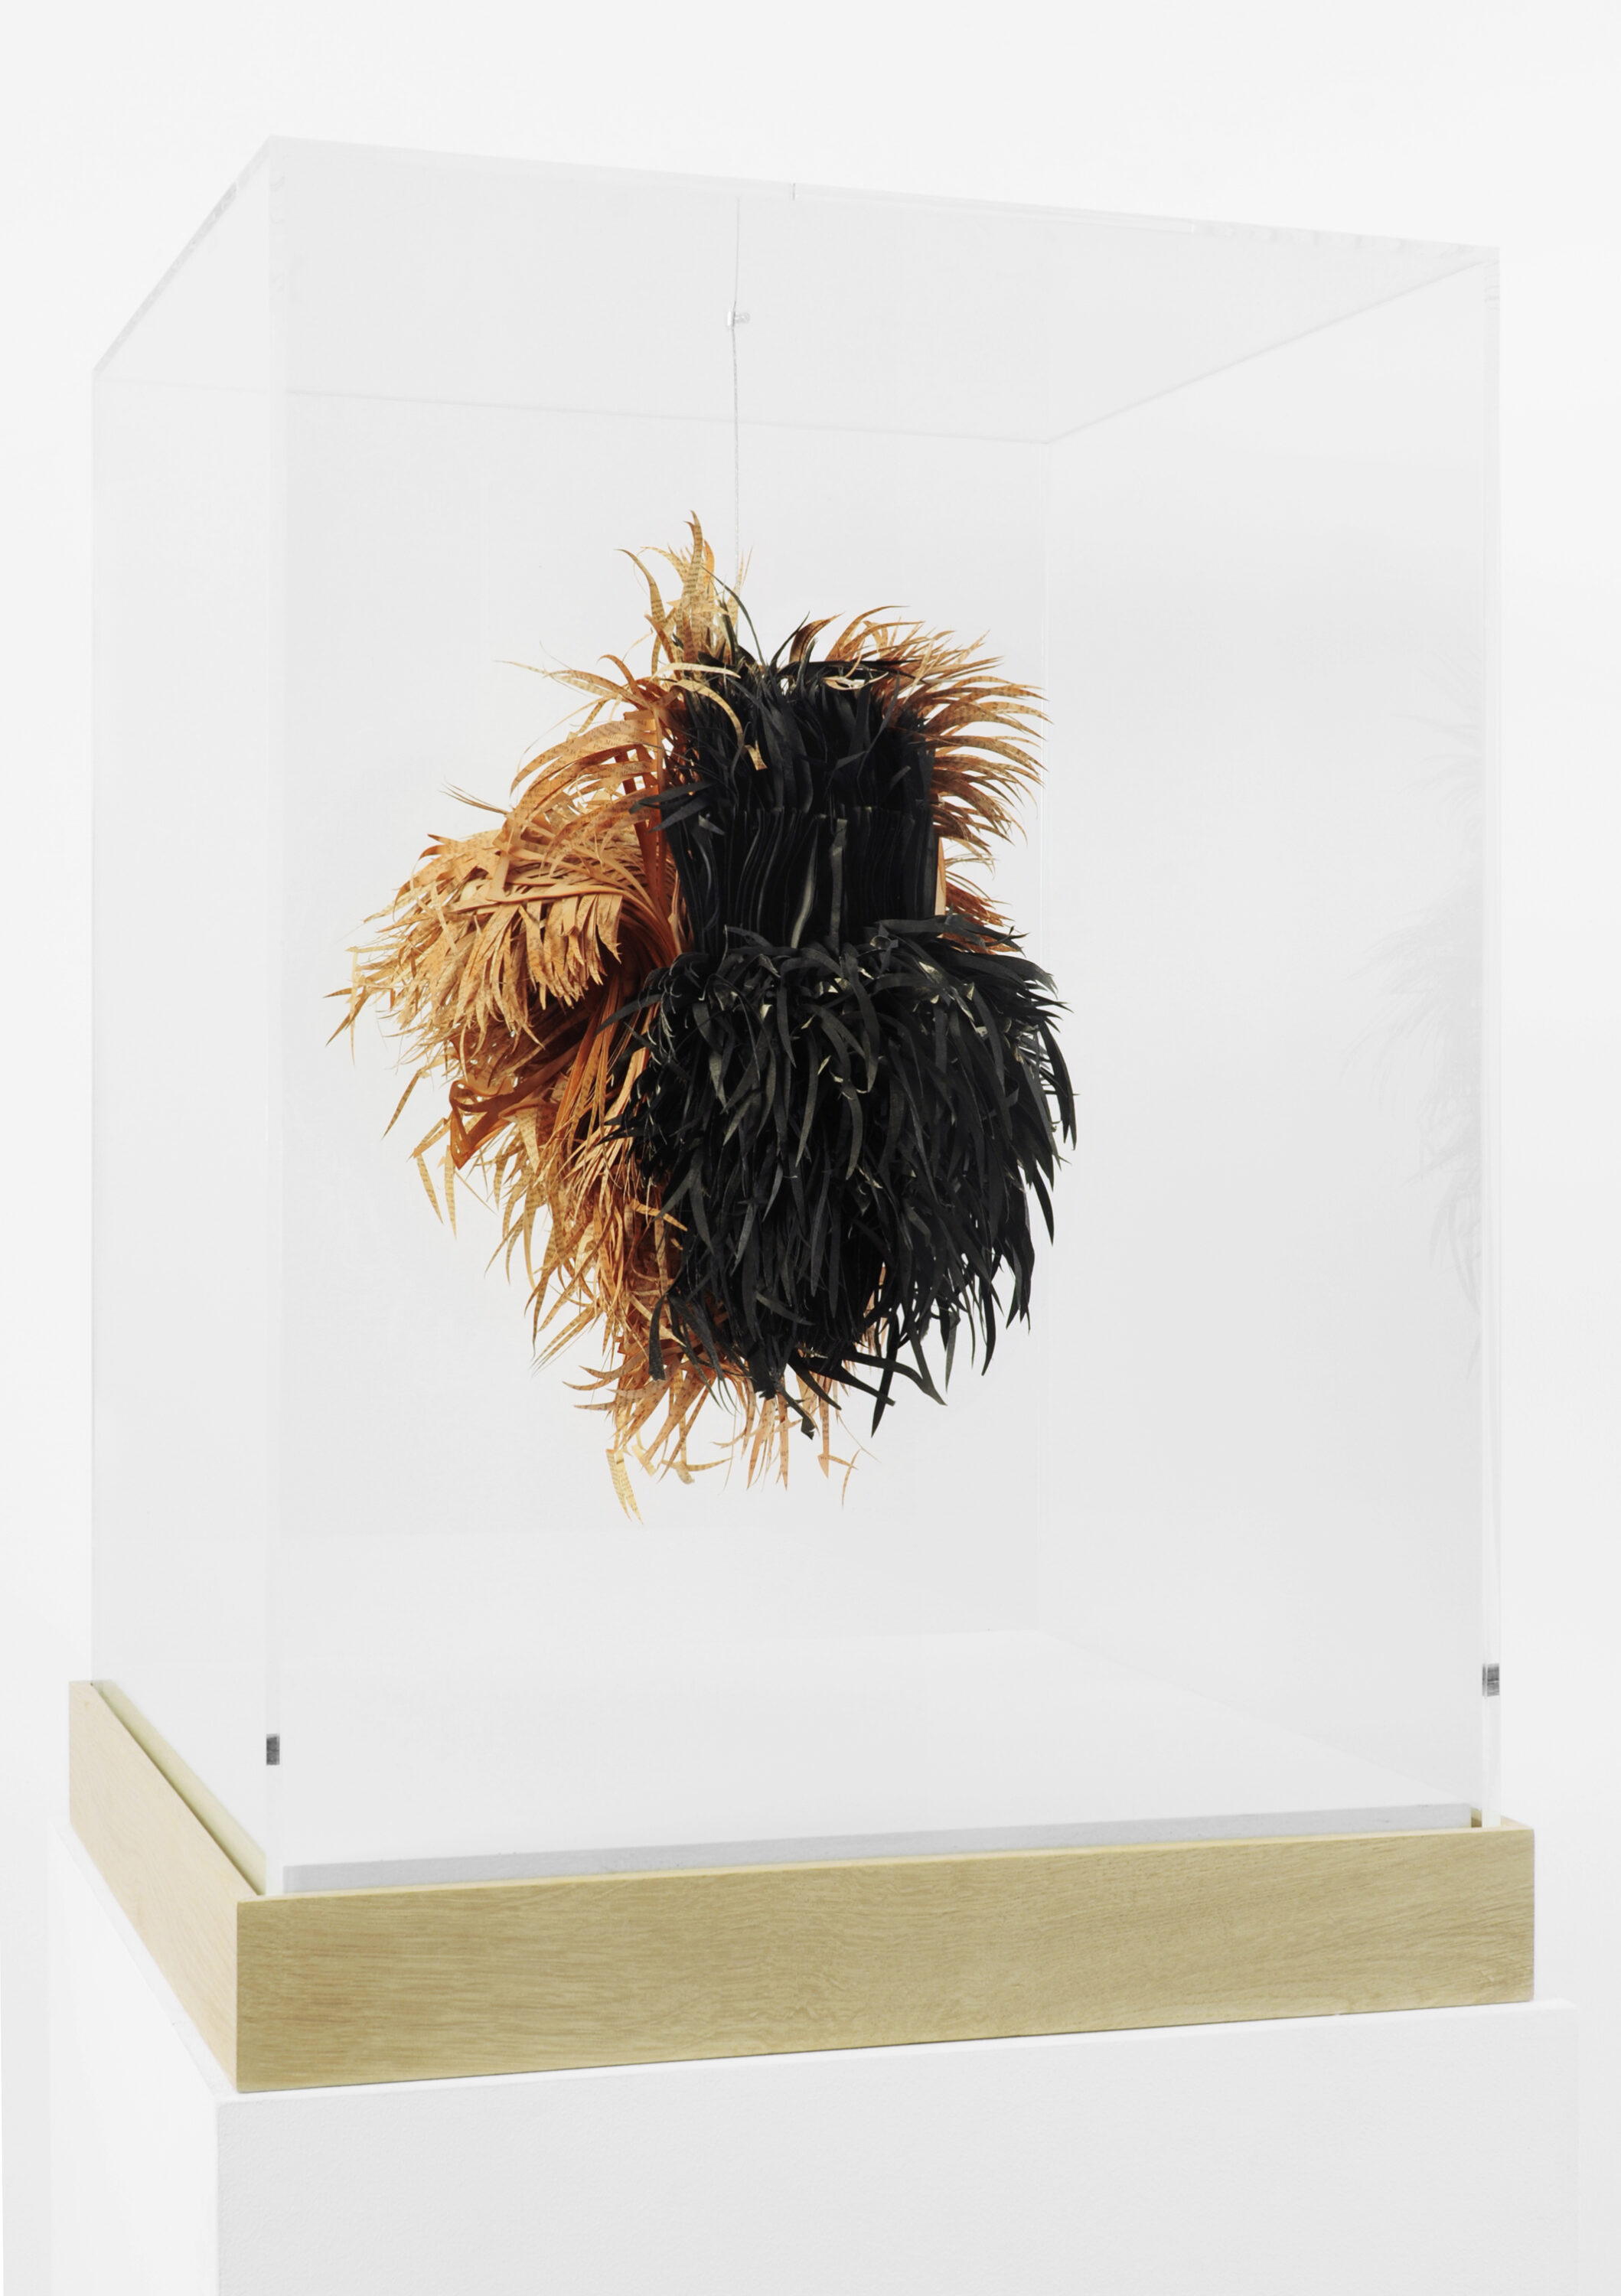 An abstract sculpture made of sliced pages of books hangs in a glass vitrine. The half black and half straw-colored slices look like a mass of hay